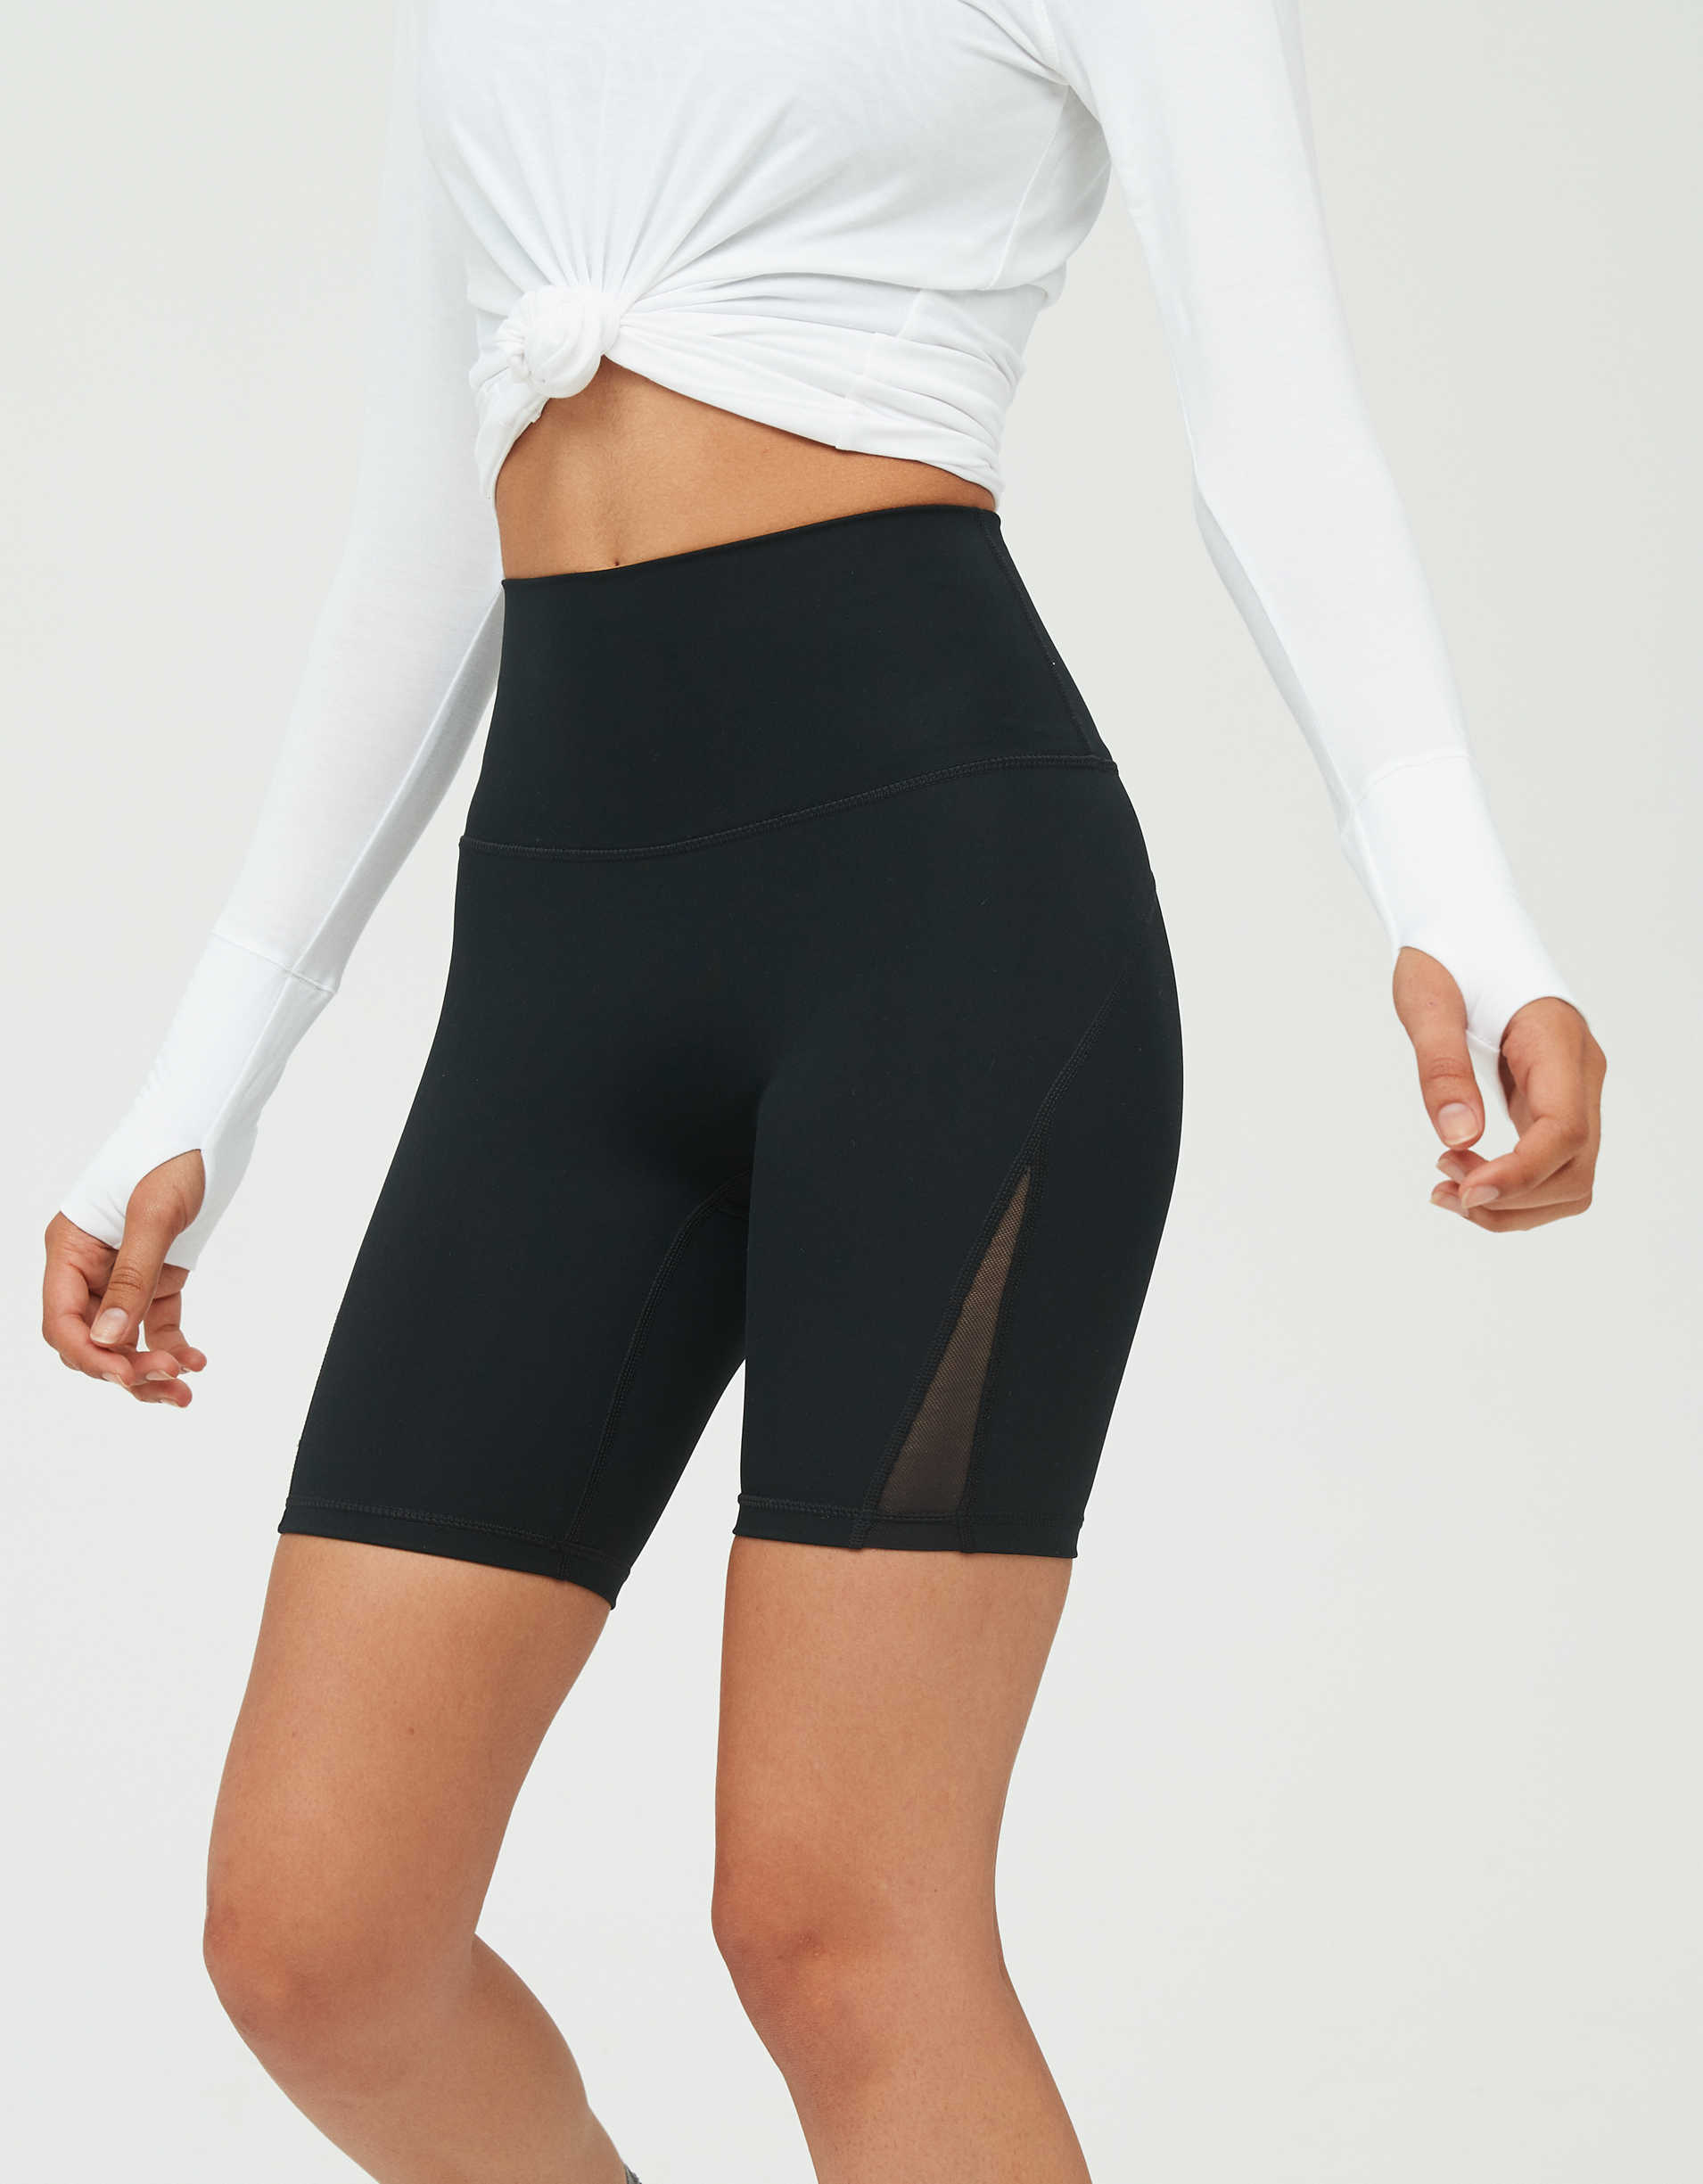 OFFLINE Goals Mesh Bike Short